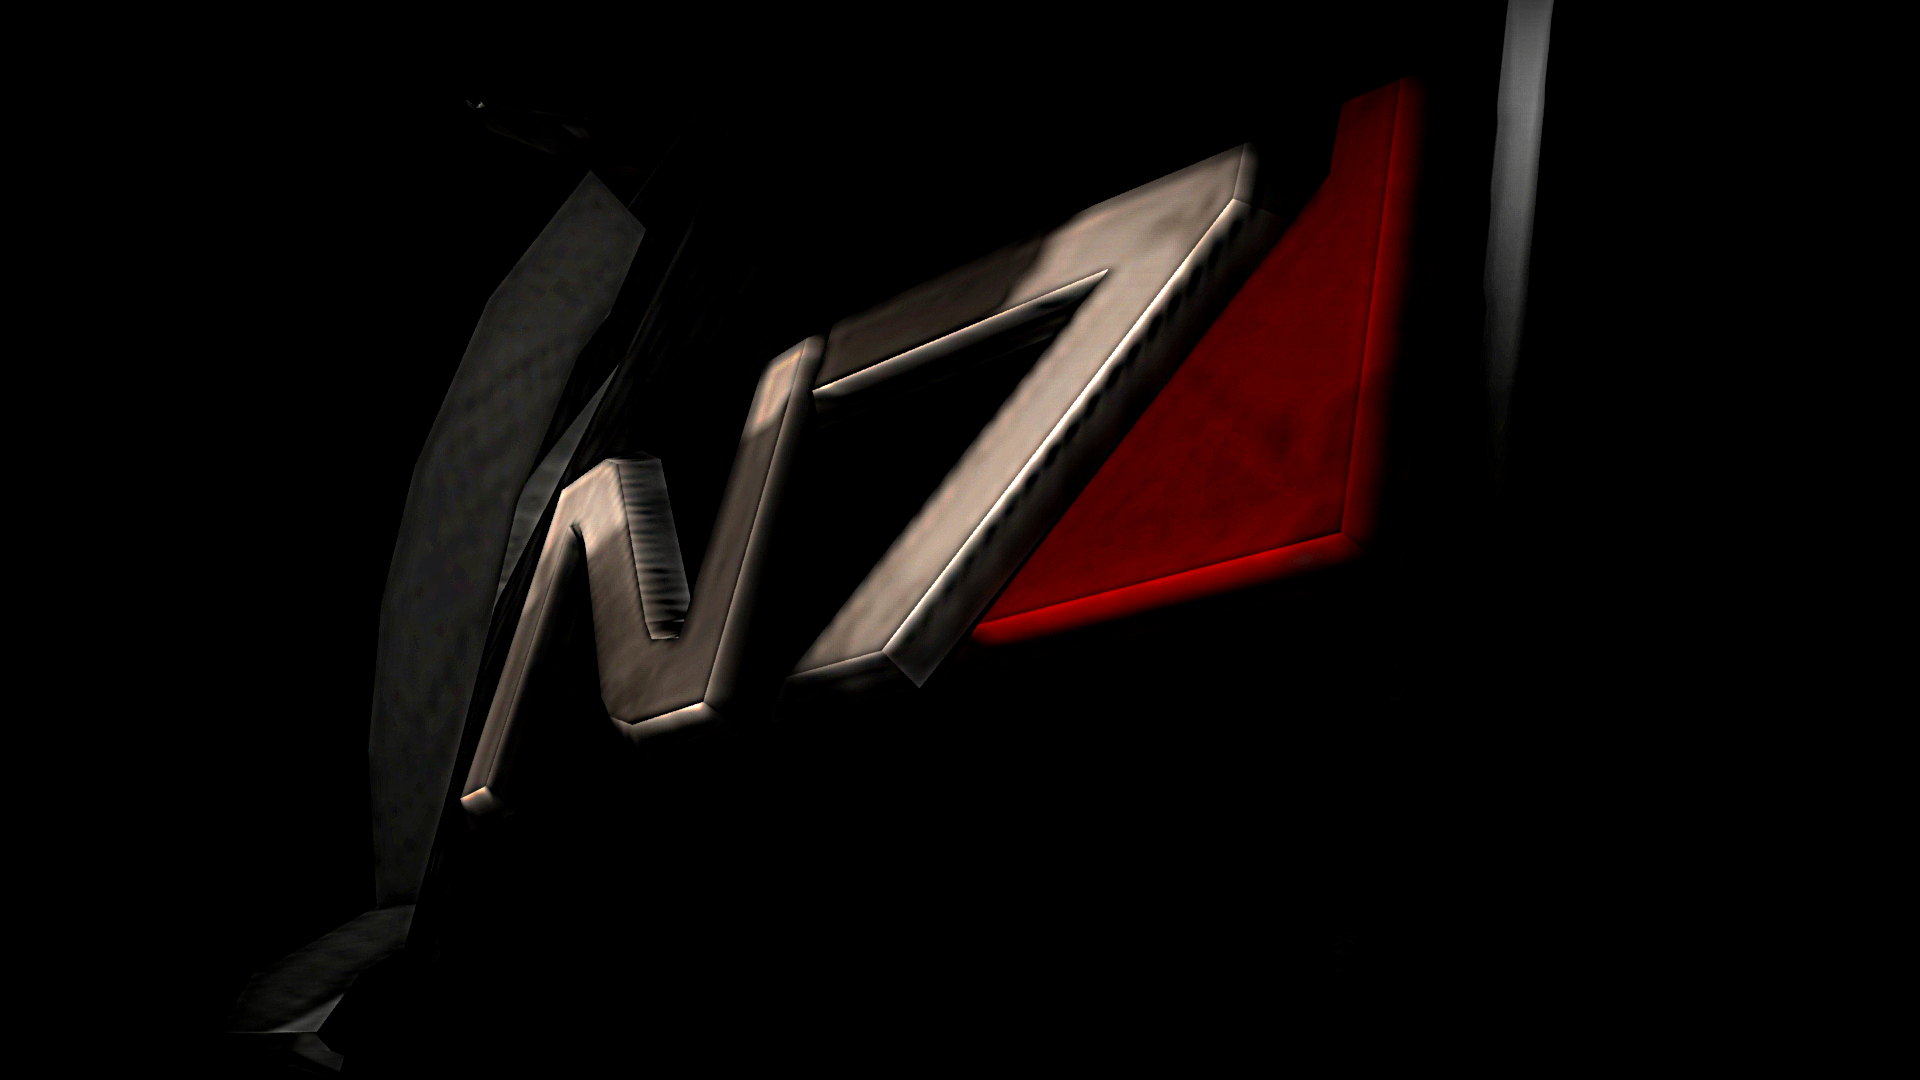 Free Download N7 Wallpapers 1920x1080 For Your Desktop